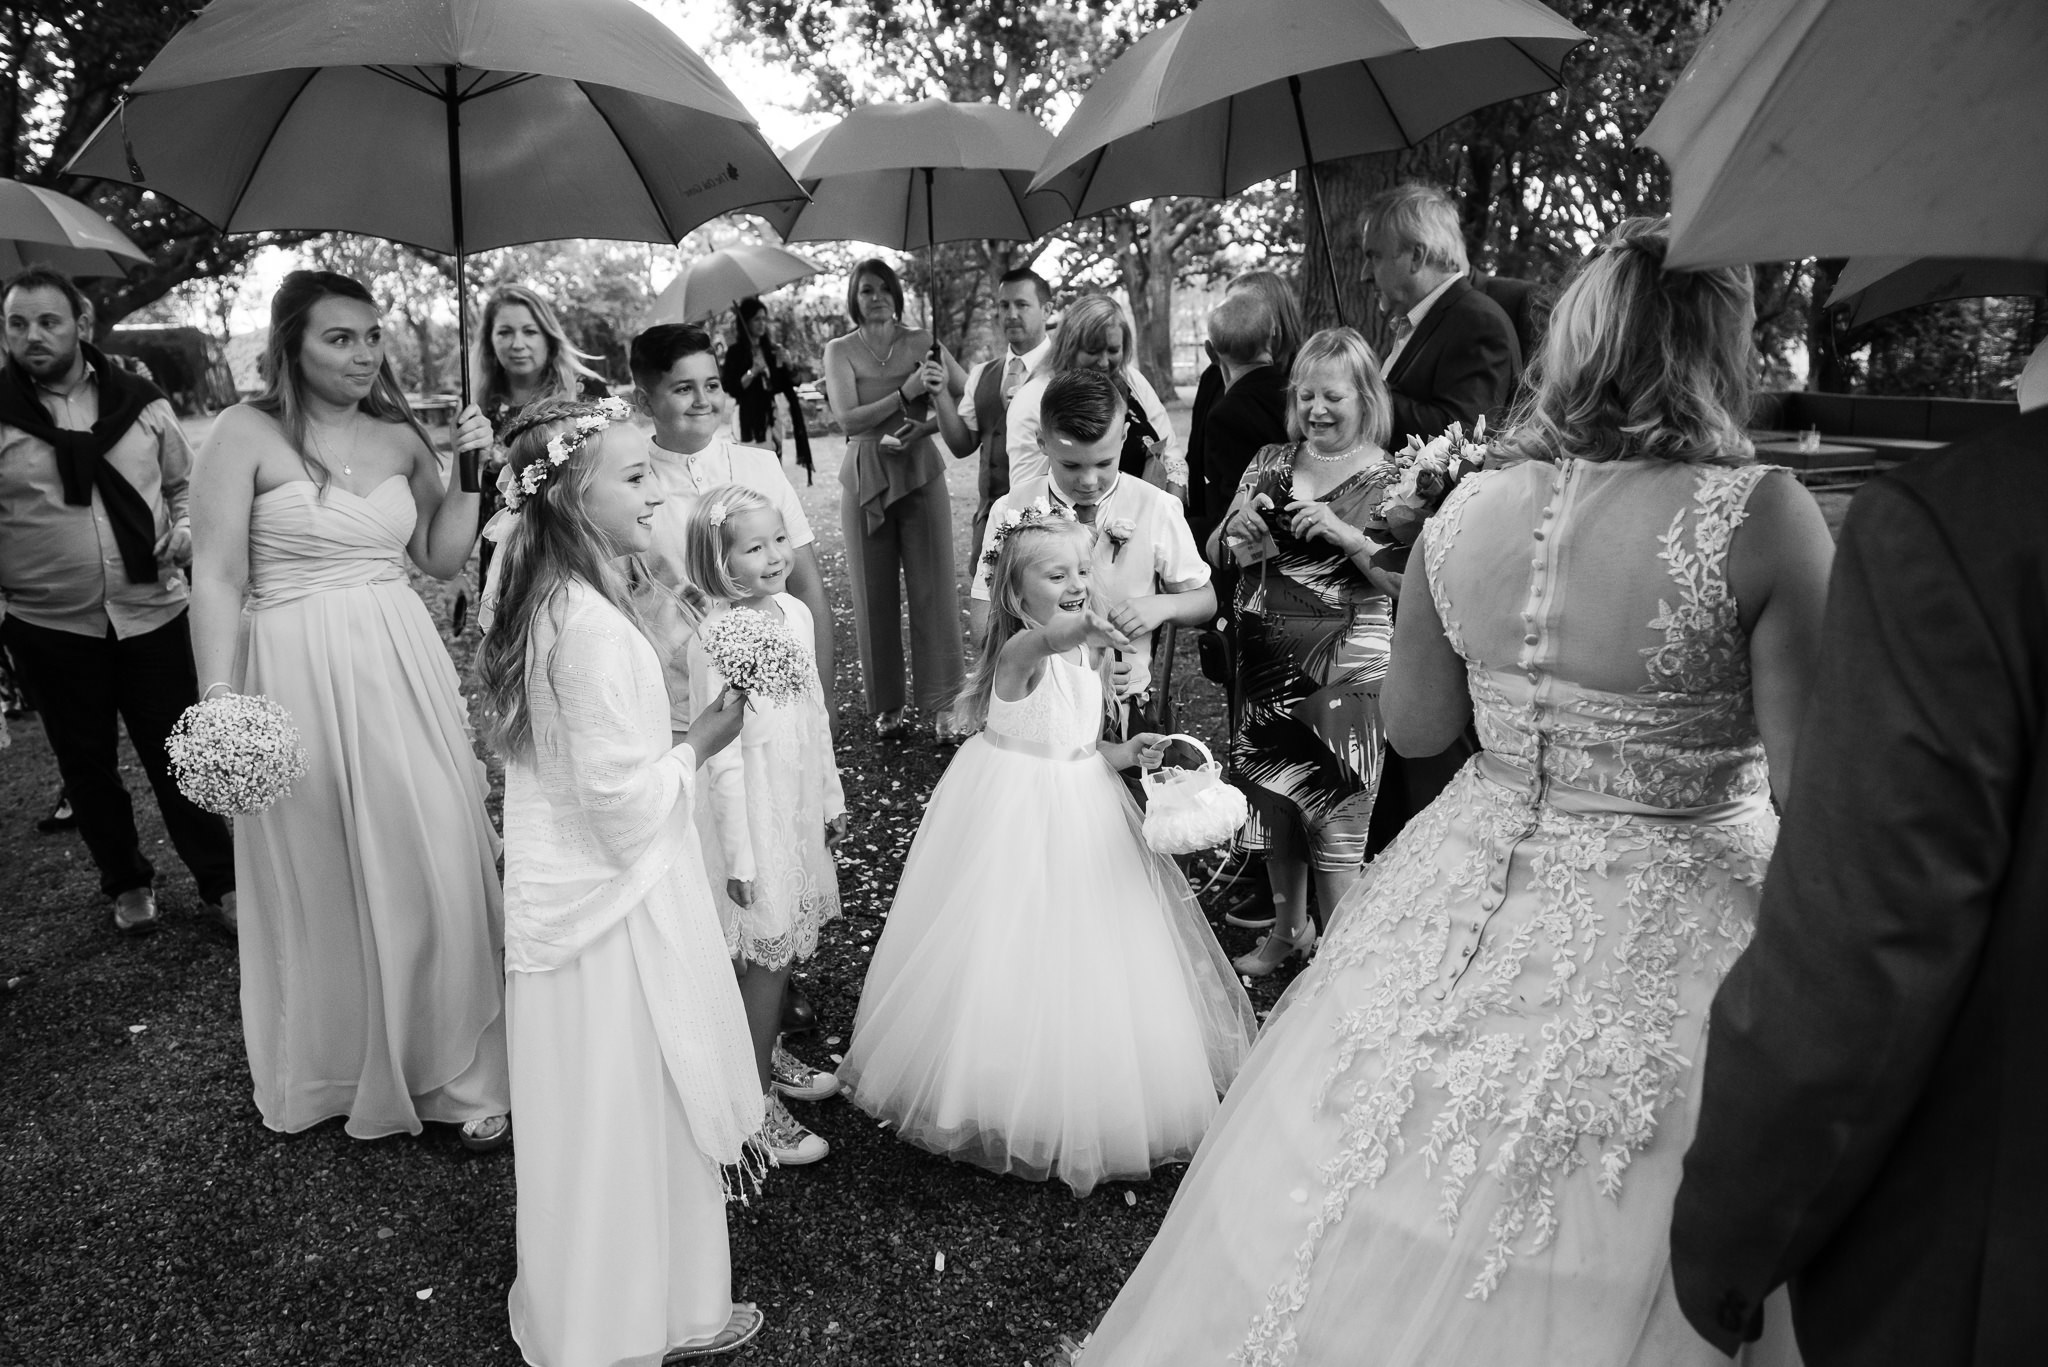 A flower girl throwing confetti over the bride and groom